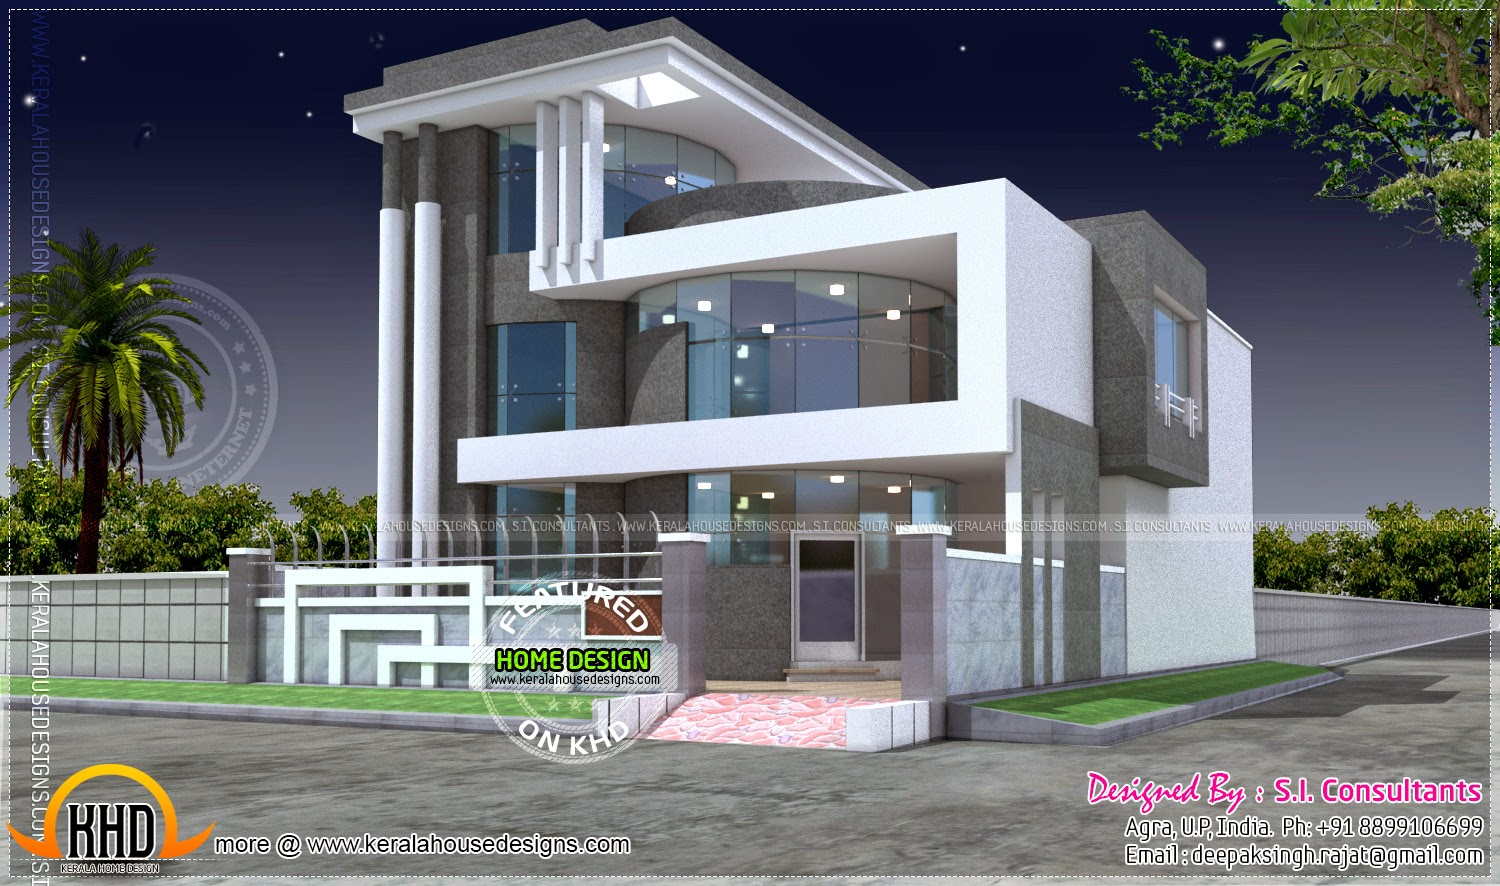 Unique luxury home design kerala home design and floor plans for Luxury house plans with photos